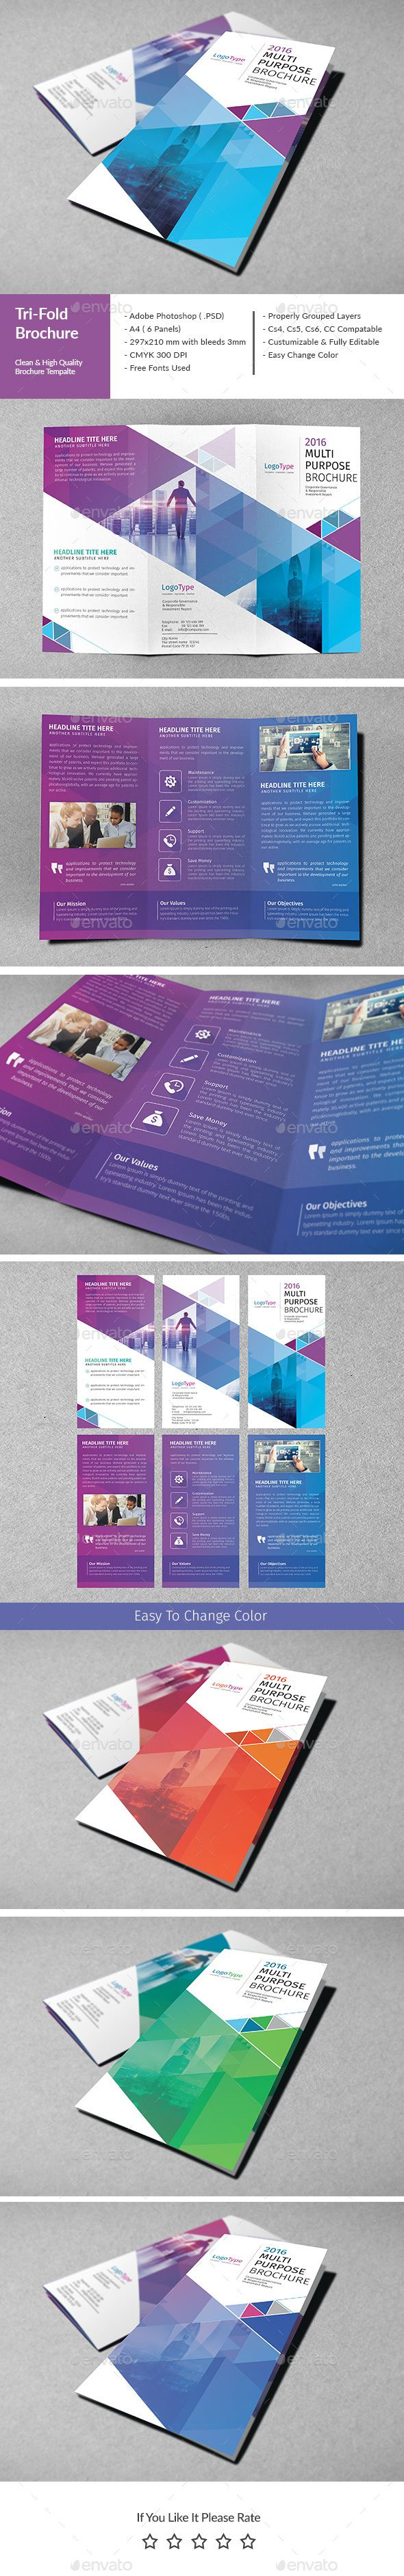 Corporate Tri-Fold Brochure Template PSD. Download here: http://graphicriver.net/item/corporate-trifold-brochure-06/15026570?ref=ksioks